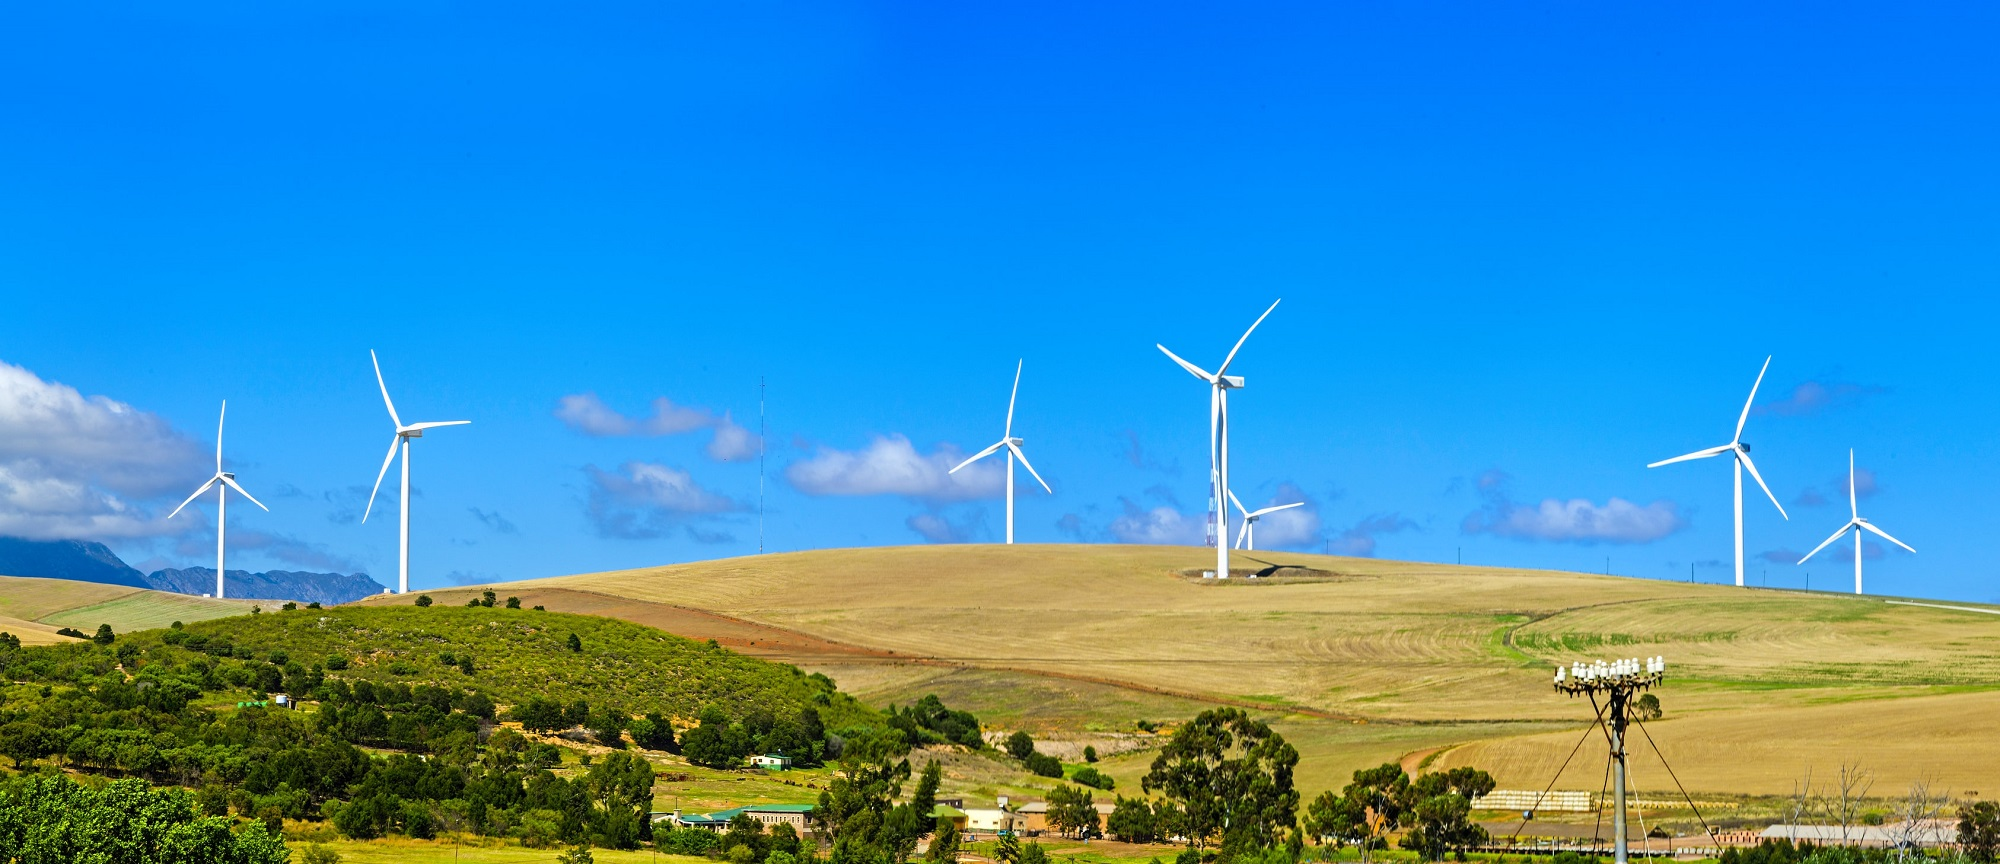 field with wind turbines. Renewable energy companies can showcase their green energy services through NEO Network